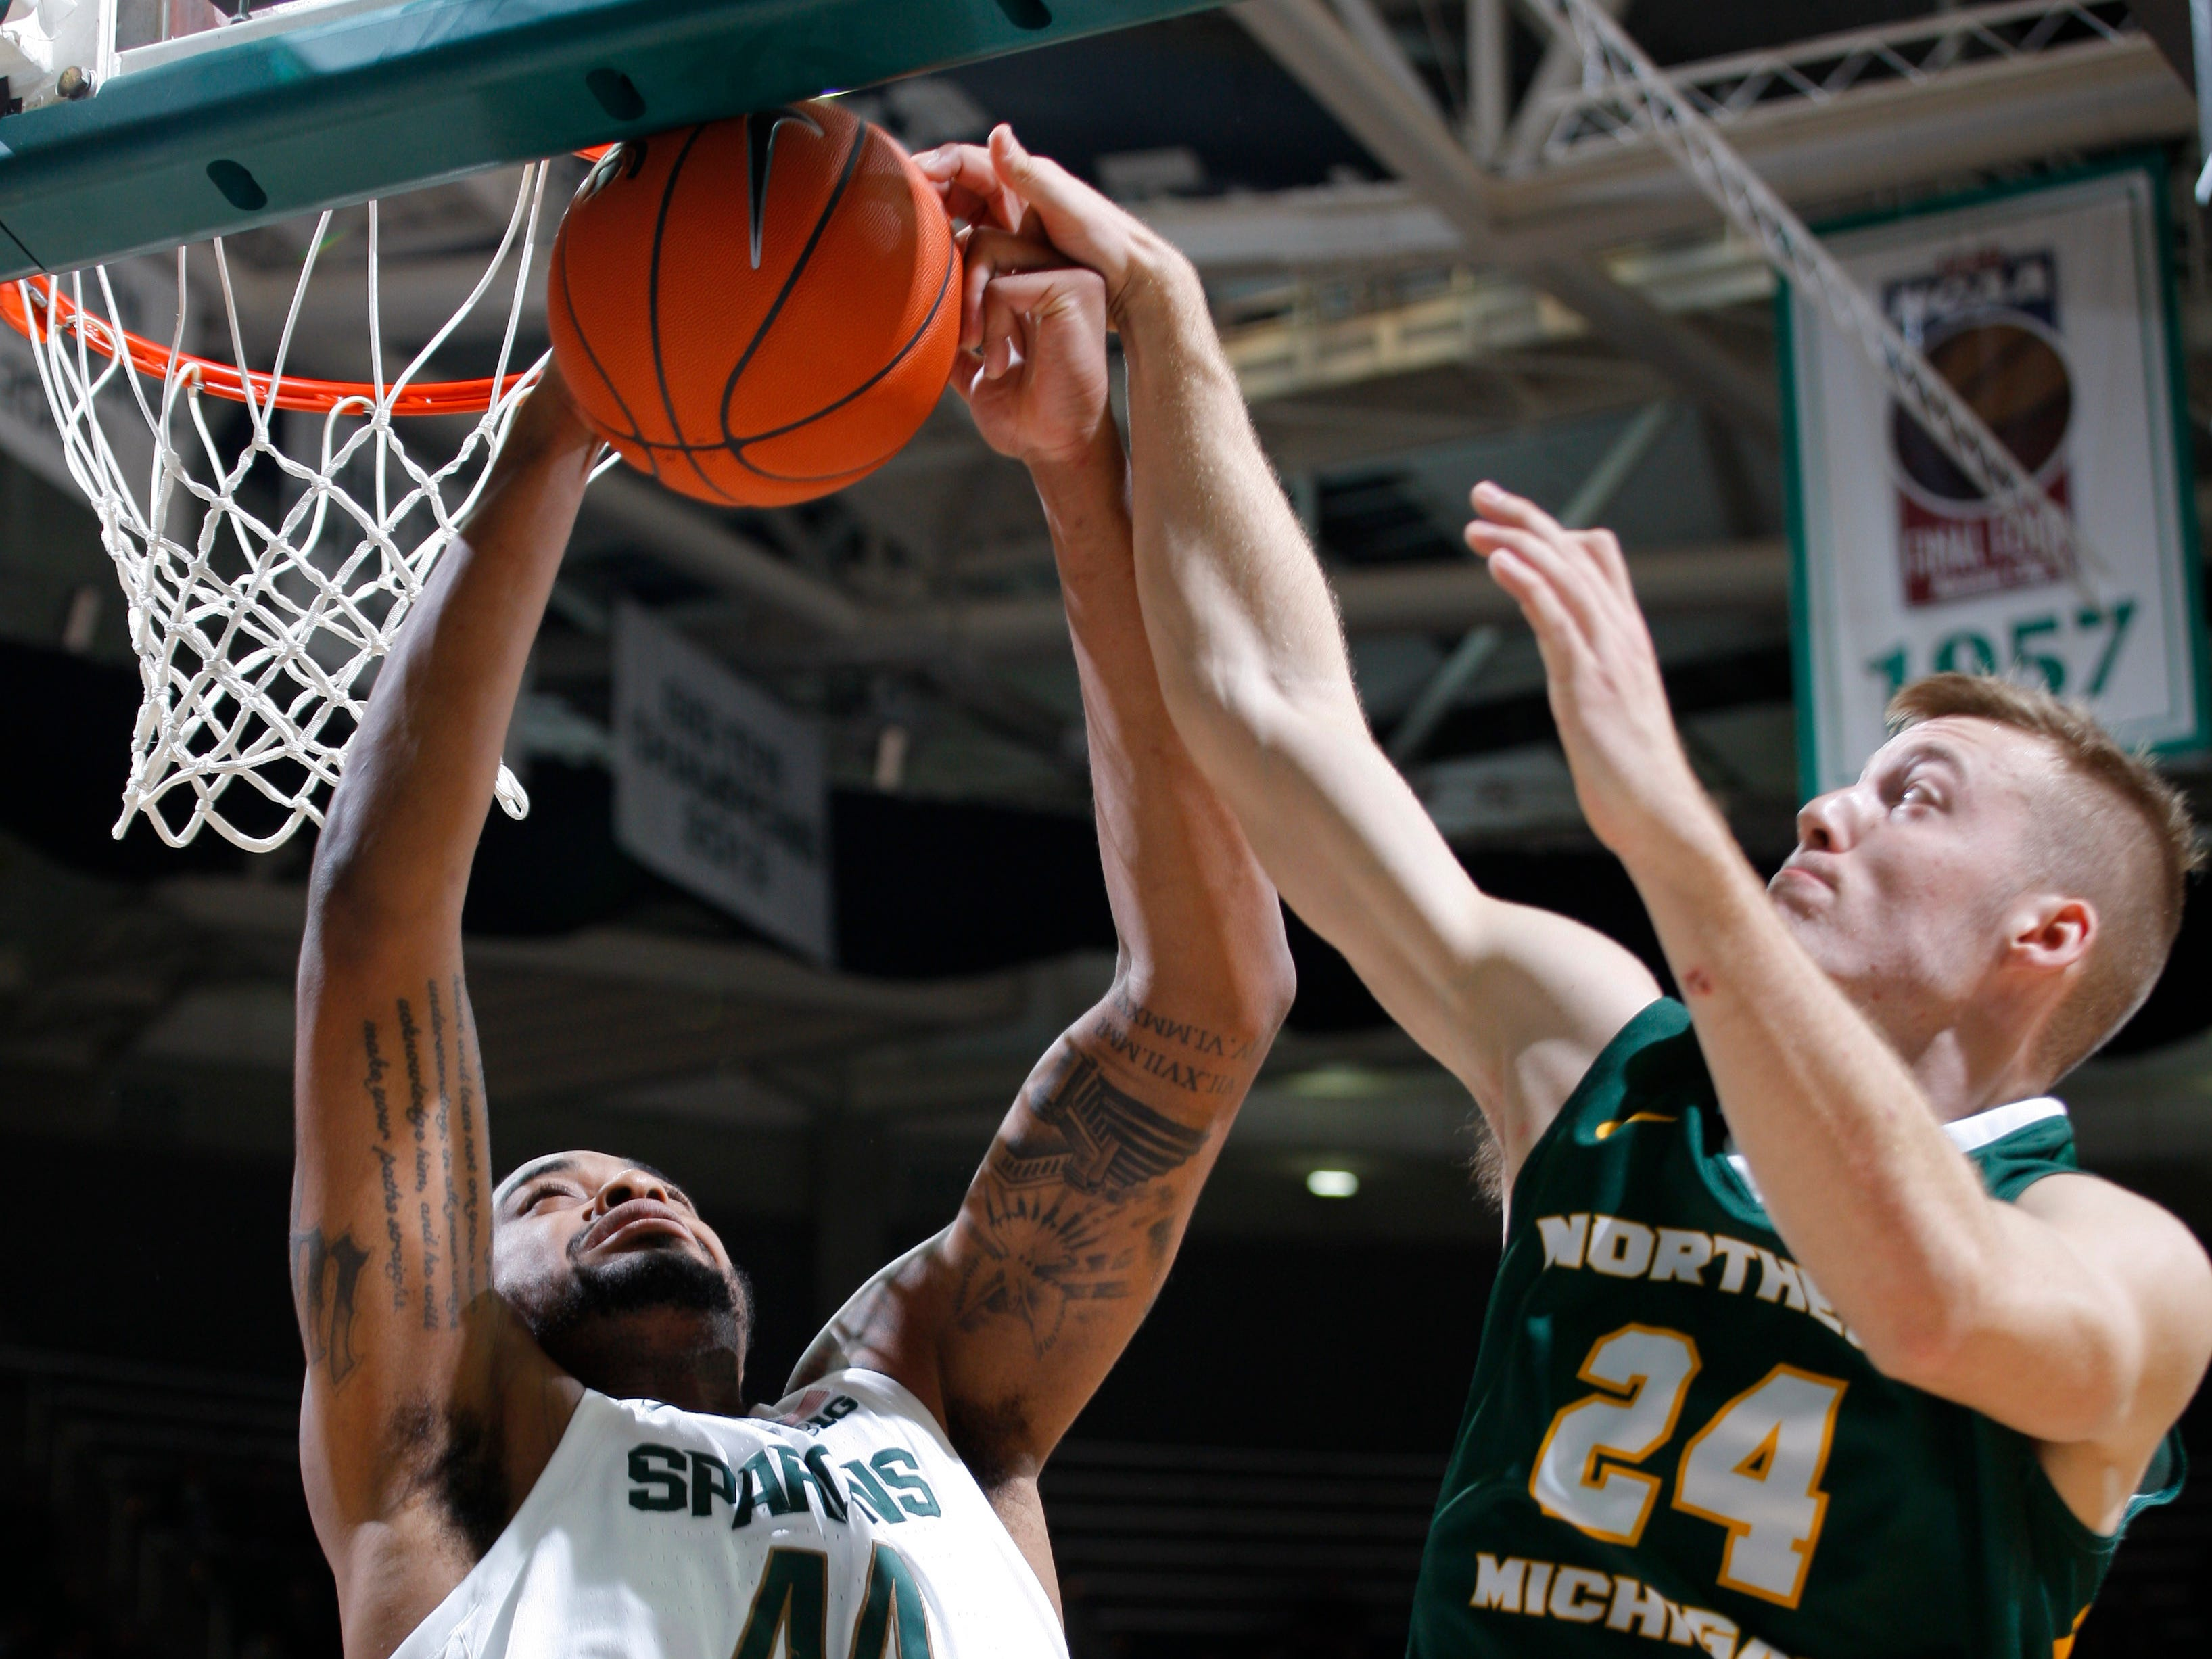 Michigan State's Nick Ward, left, and Northern Michigan's Alec Fruin battle for a rebound, Tuesday, Oct. 30, 2018, in East Lansing, Mich.